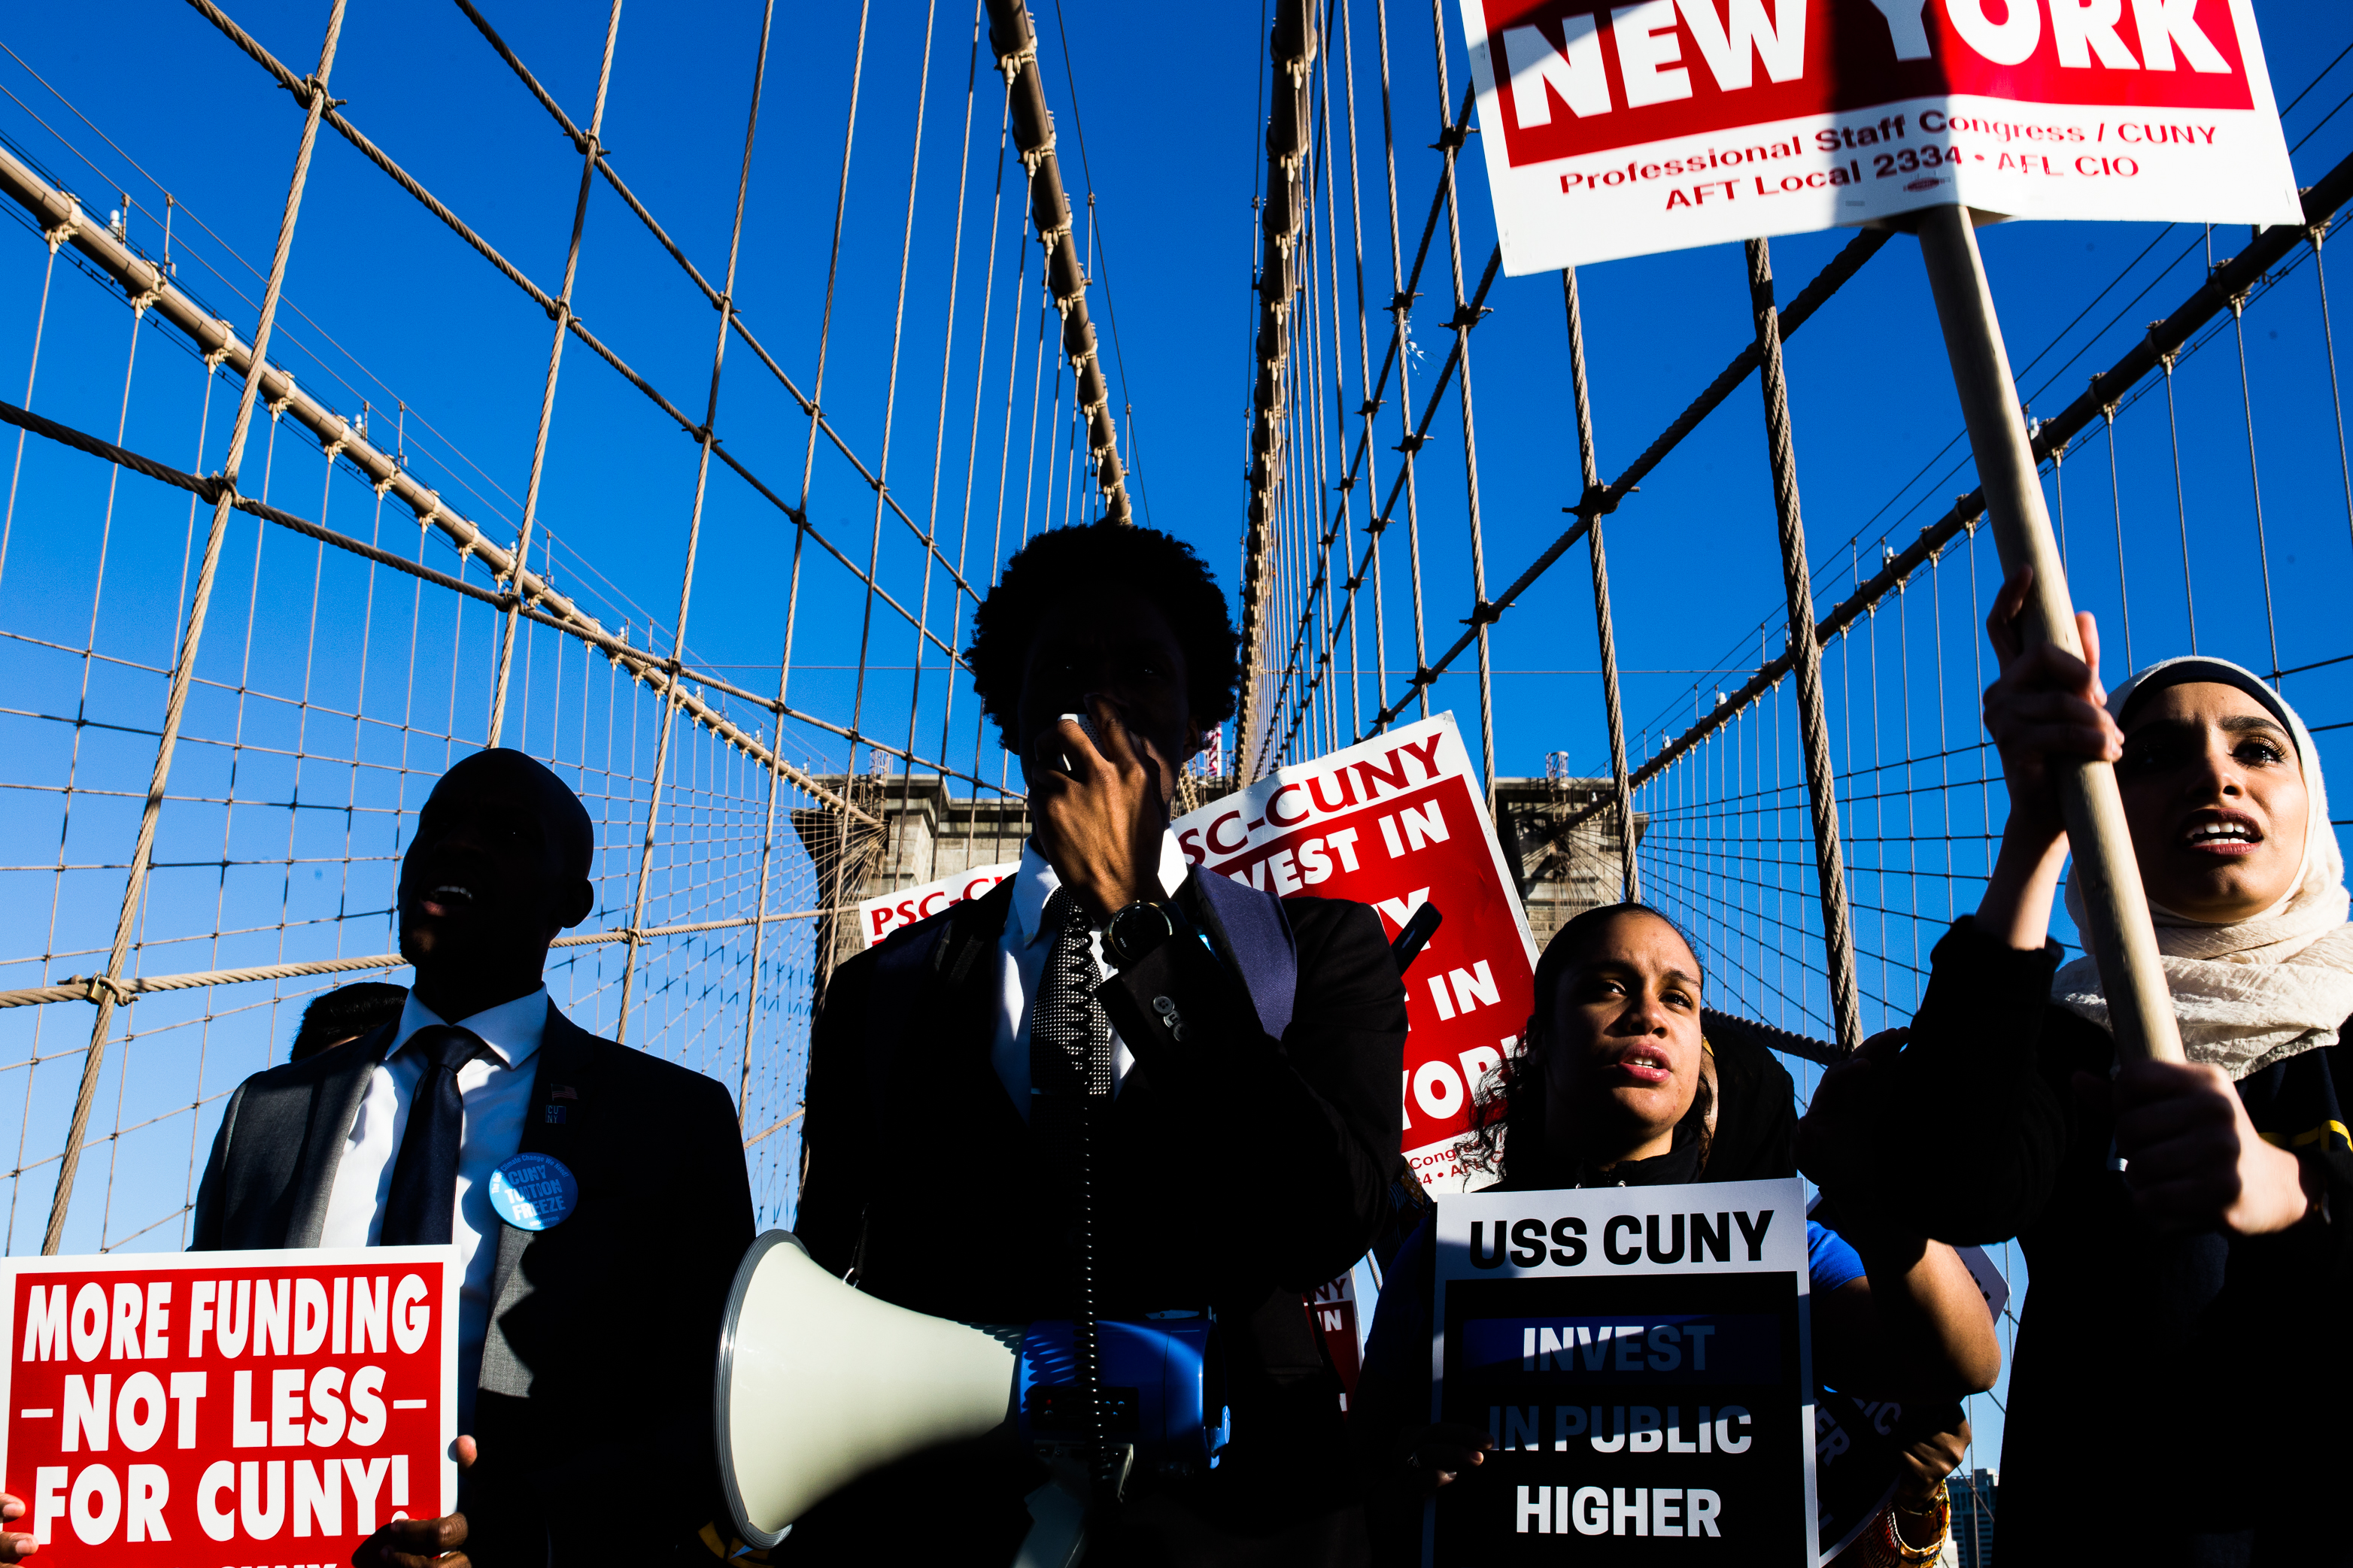 new york brooklyn bridge psc cuny united states of america stylianos papardelas